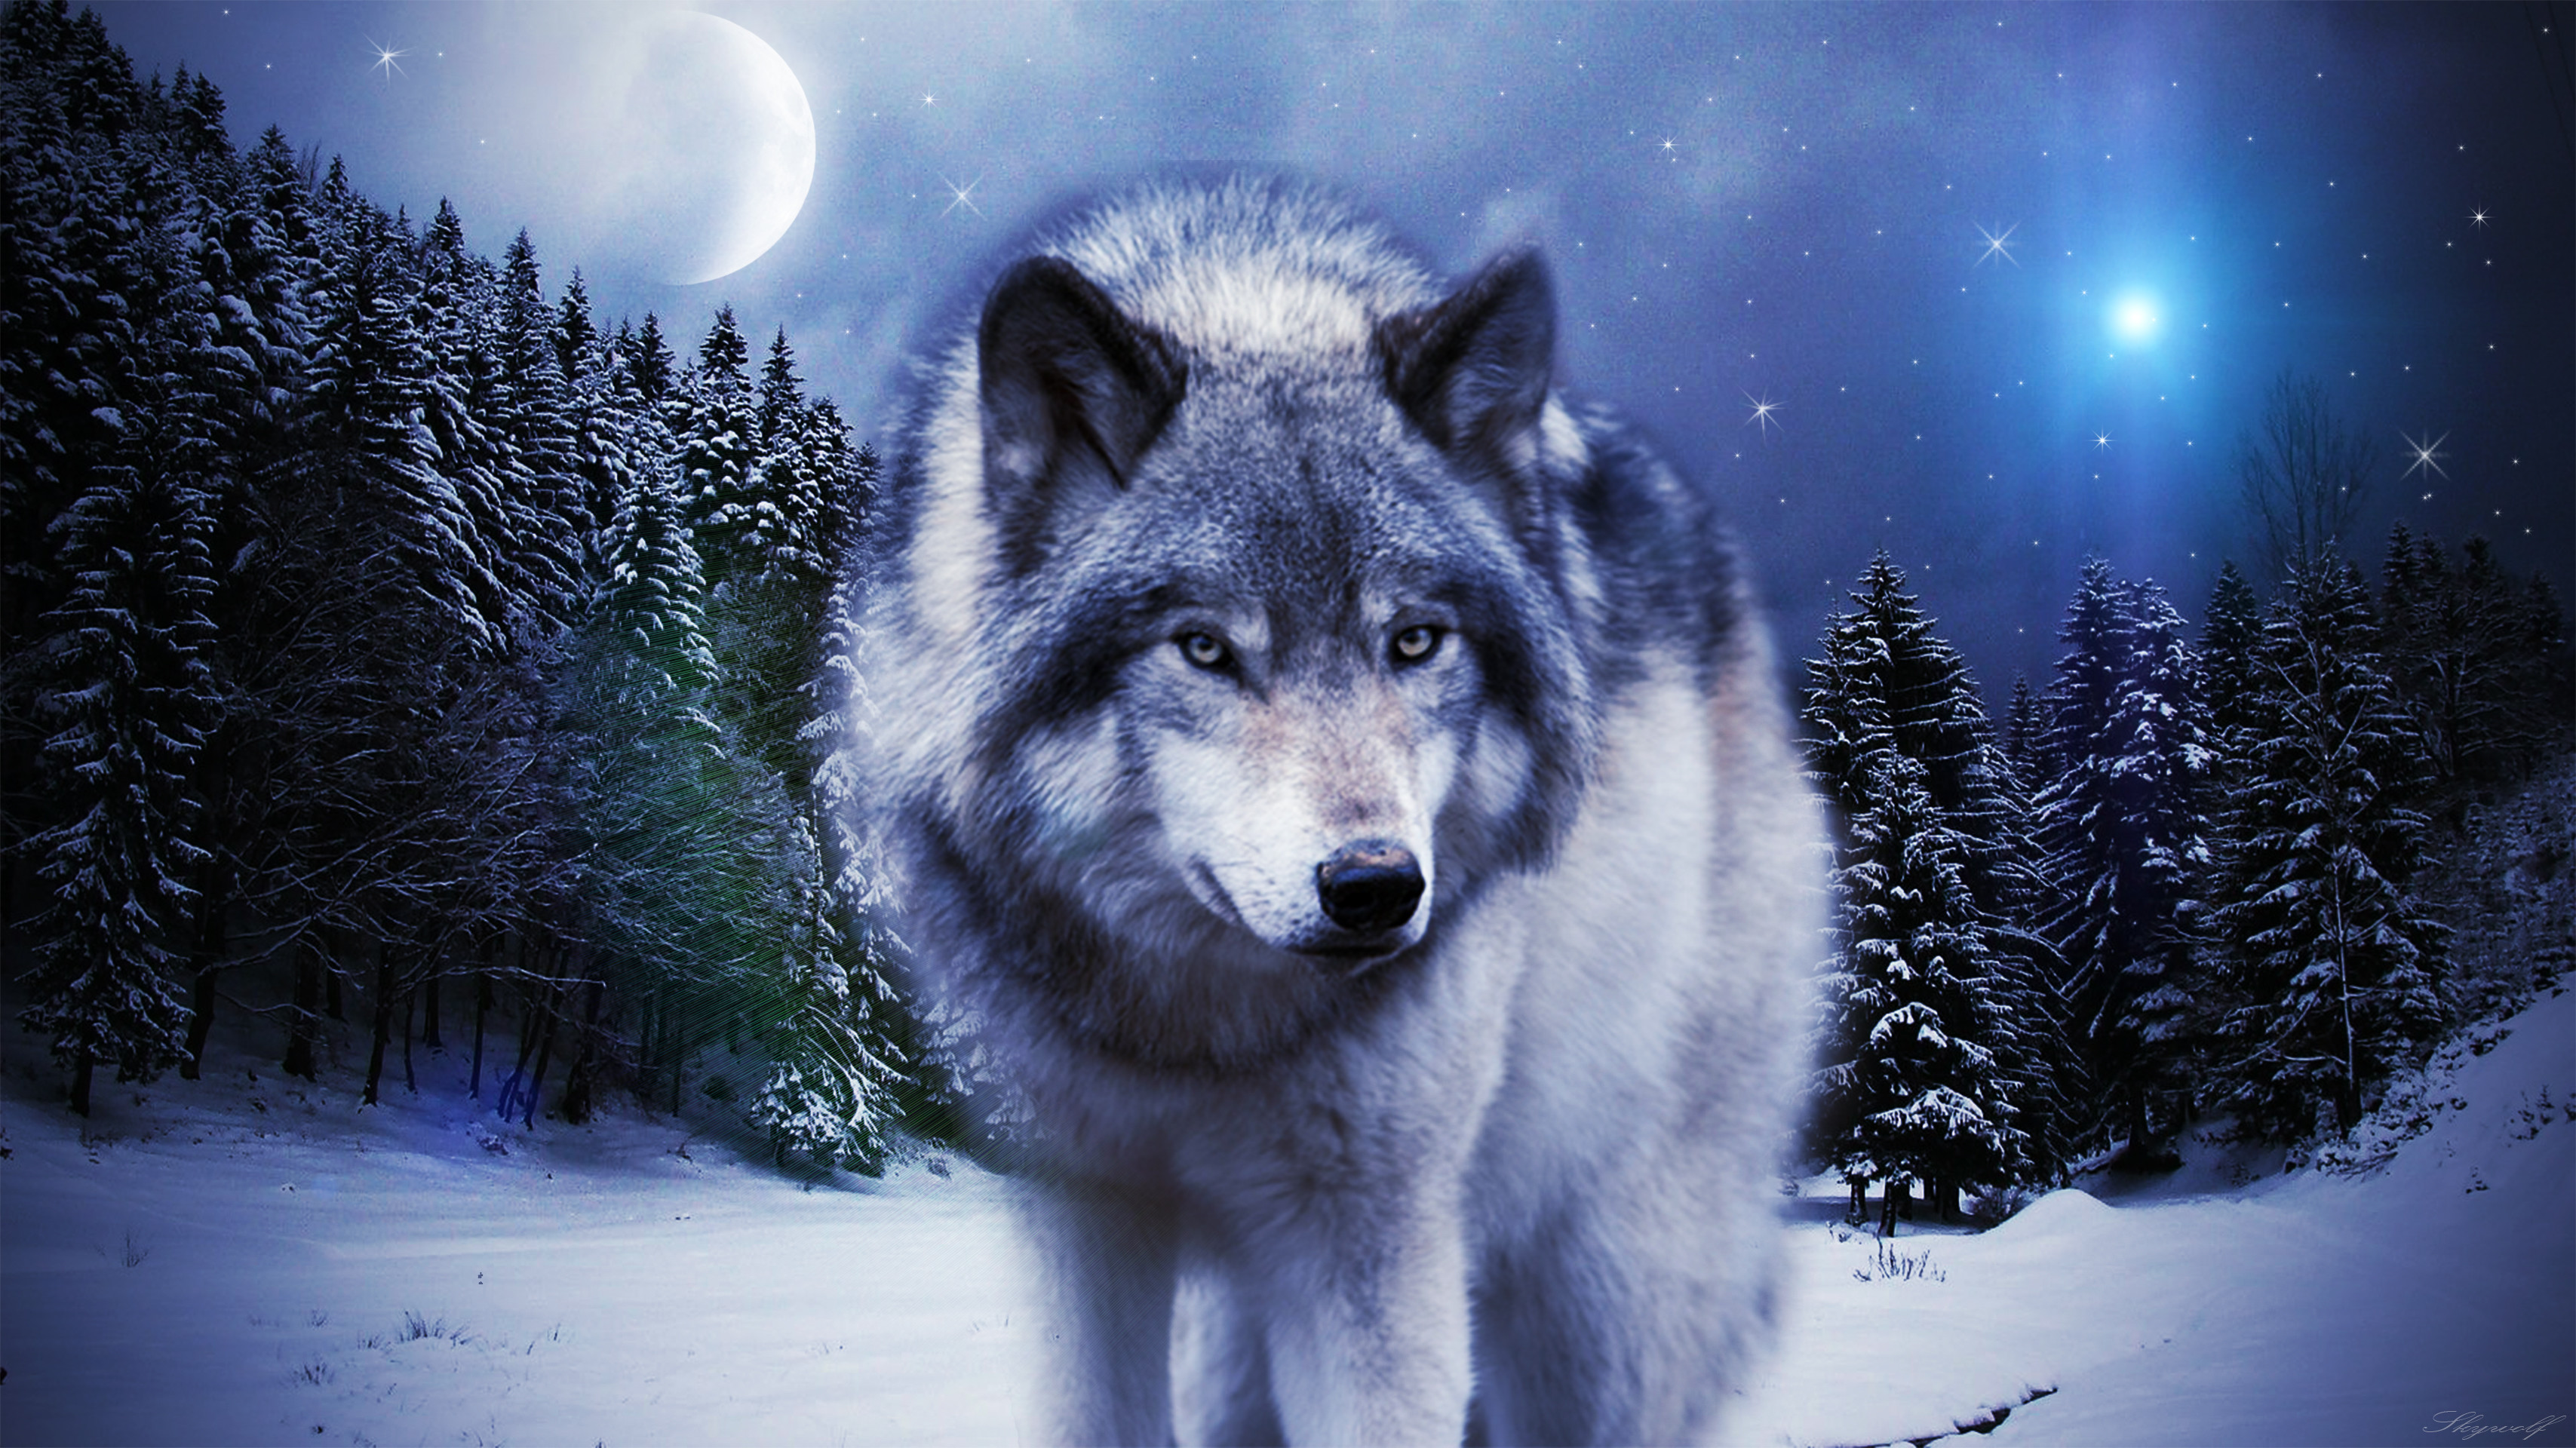 Hd Wolf Backgrounds: Timber Wolf Wallpaper ·① WallpaperTag